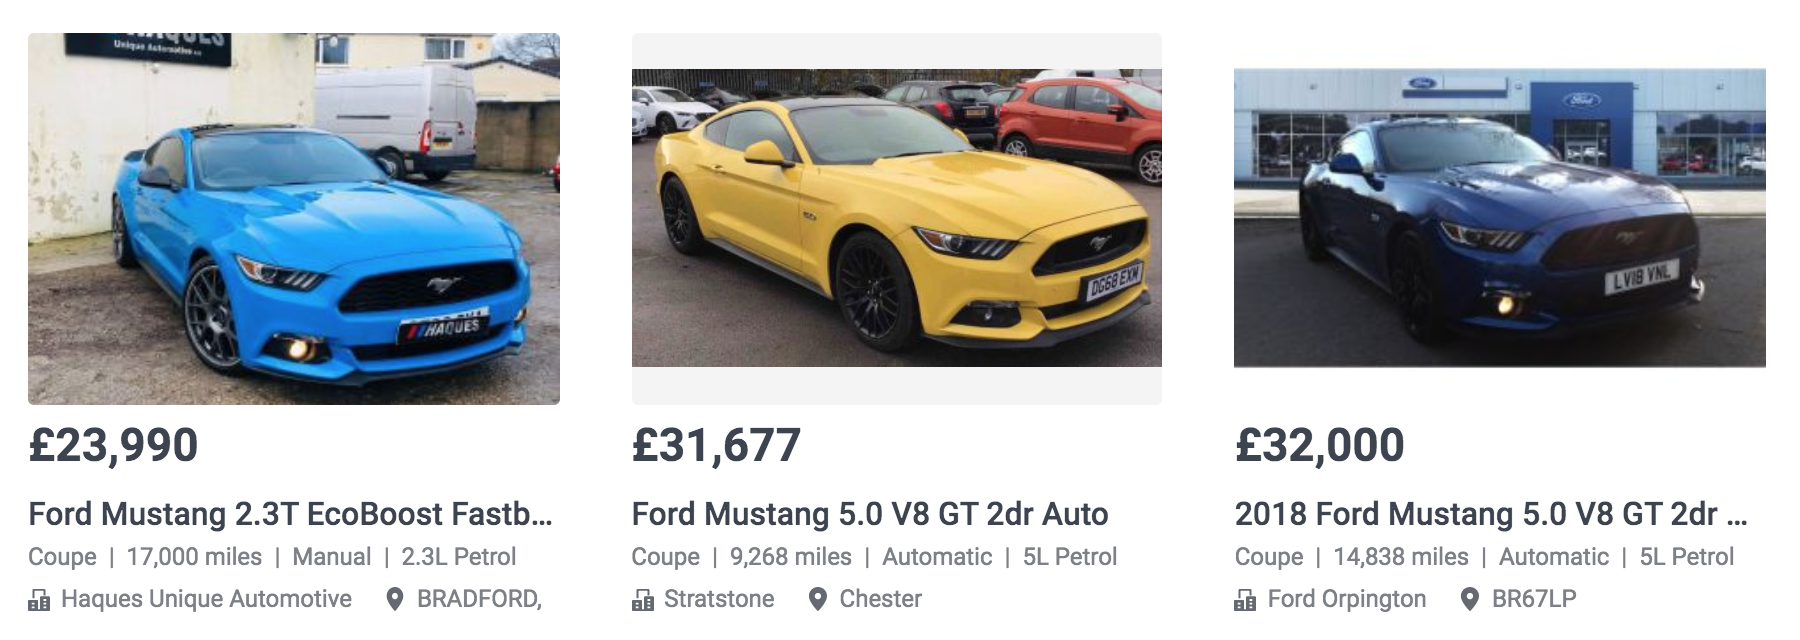 Ford Mustang SERP